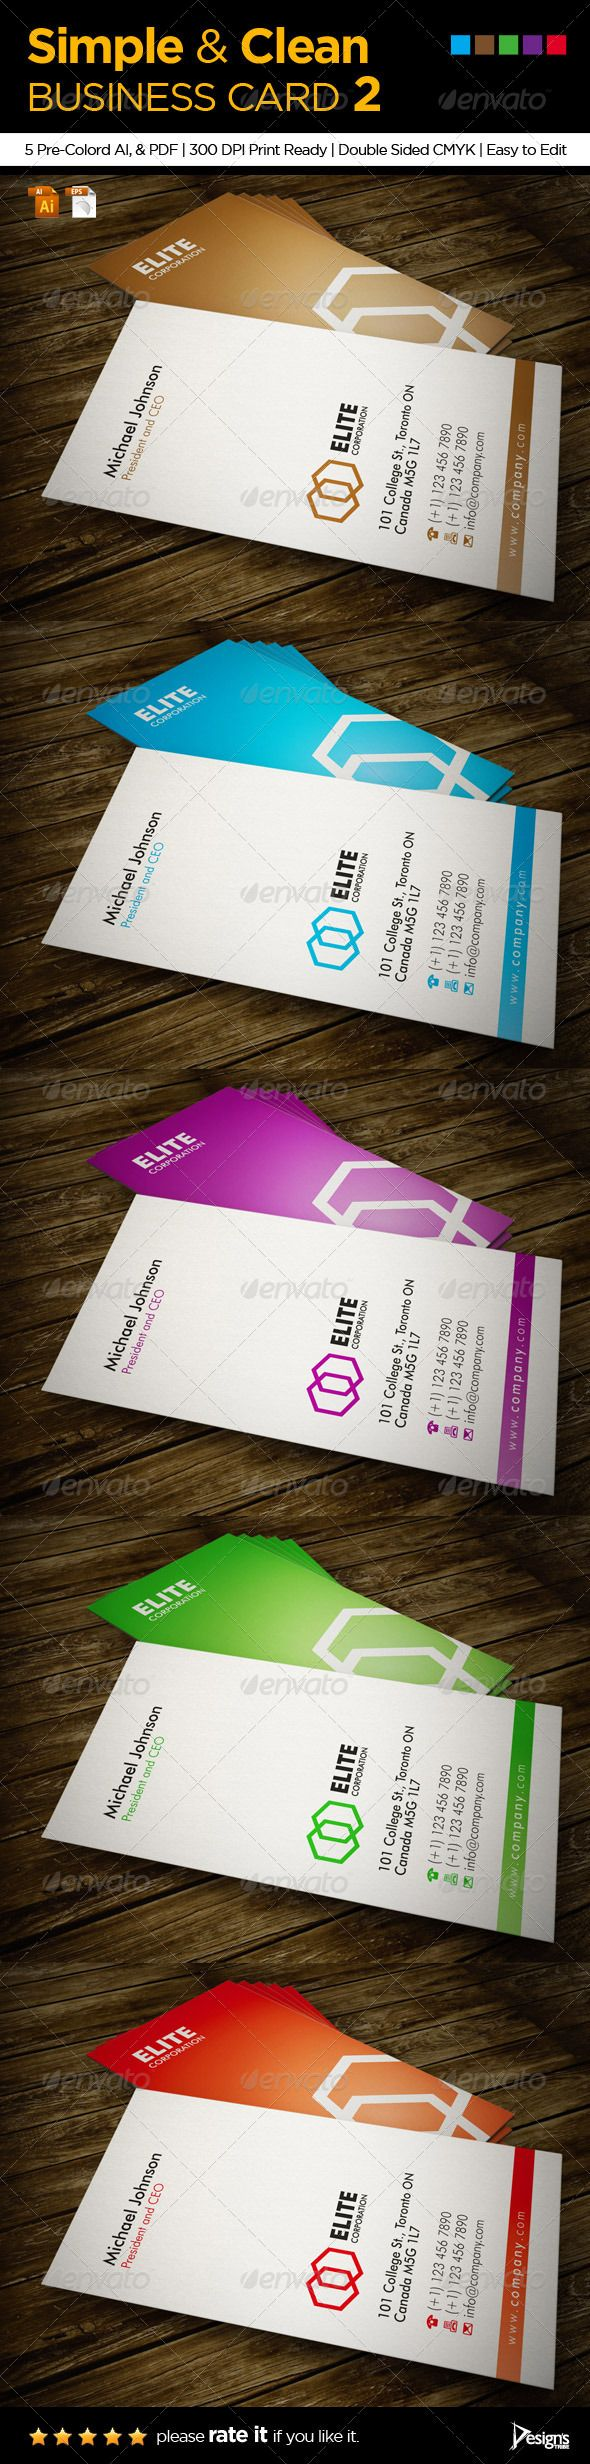 20 best Creative business cards images on Pinterest | Business ...